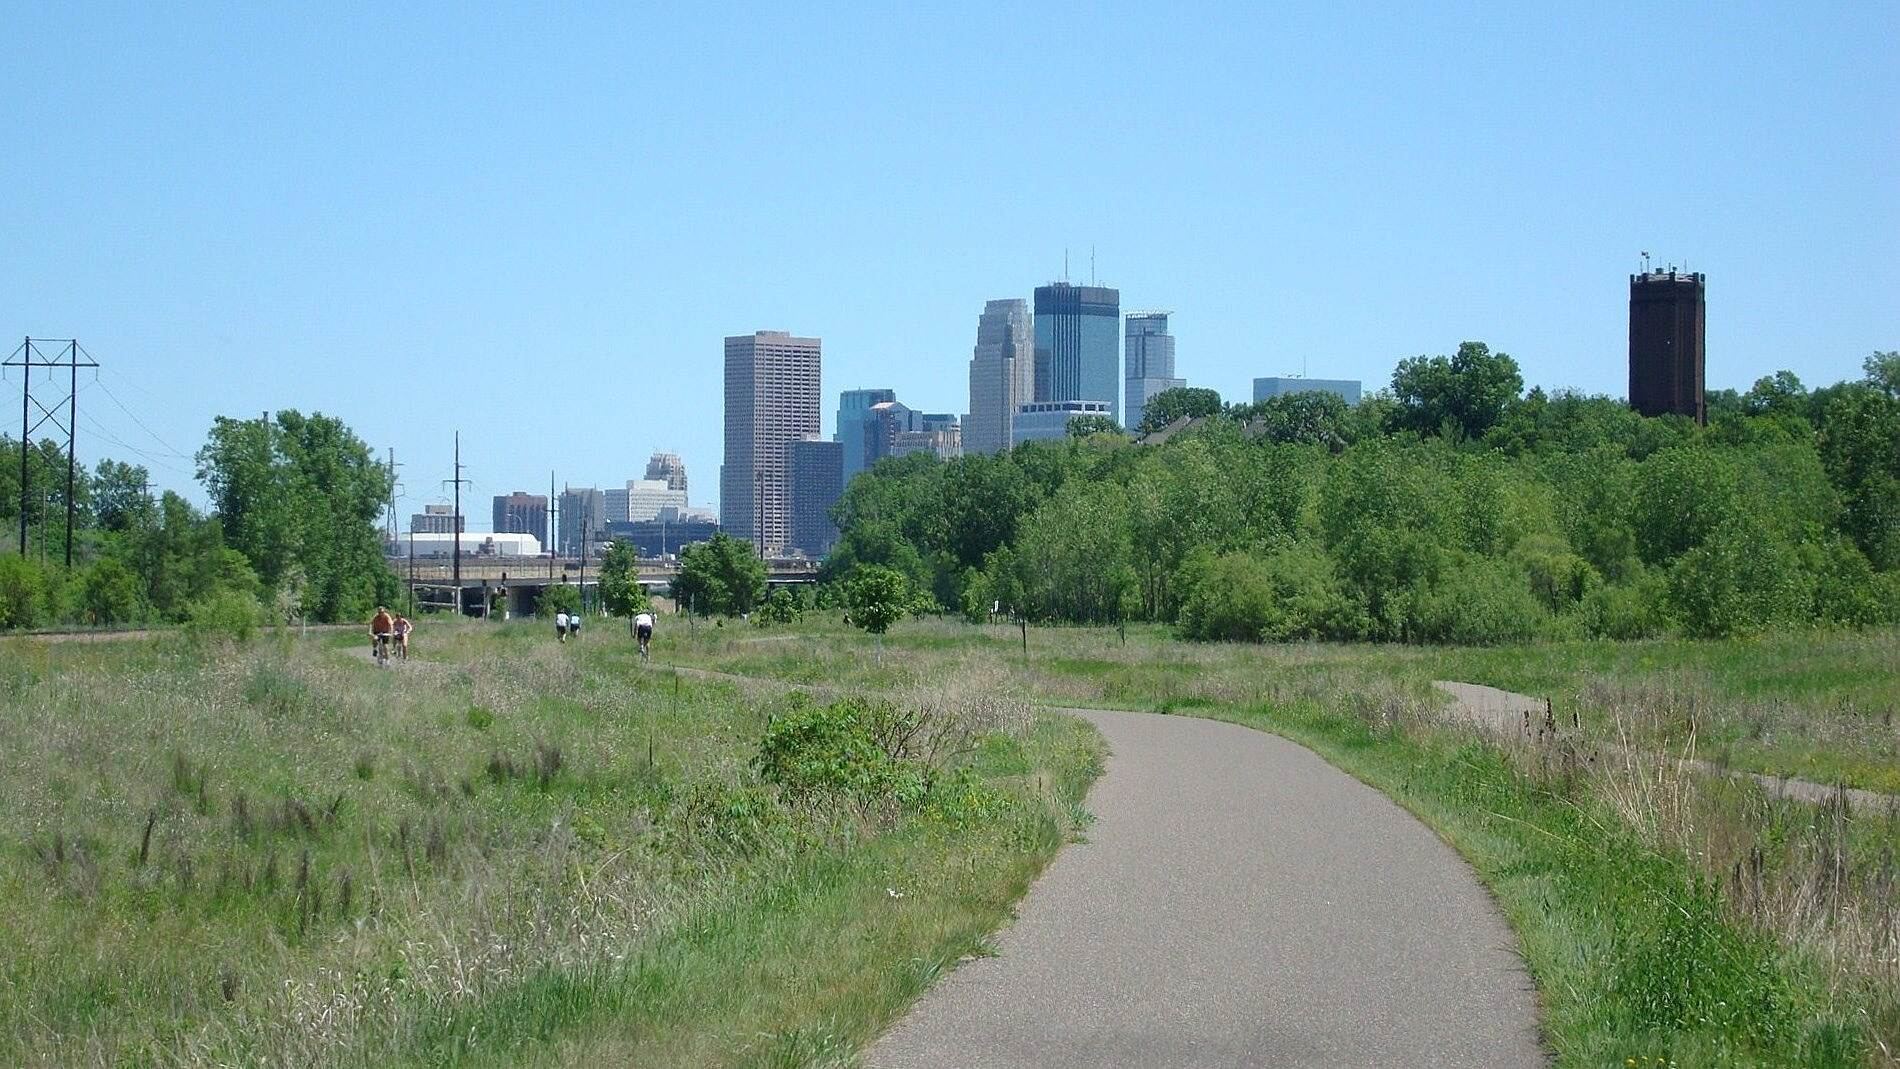 Cedar Lake LRT Regional Trail Cedar Lake Trail Looking toward Minneapolis from the Cedar Lake Trail.